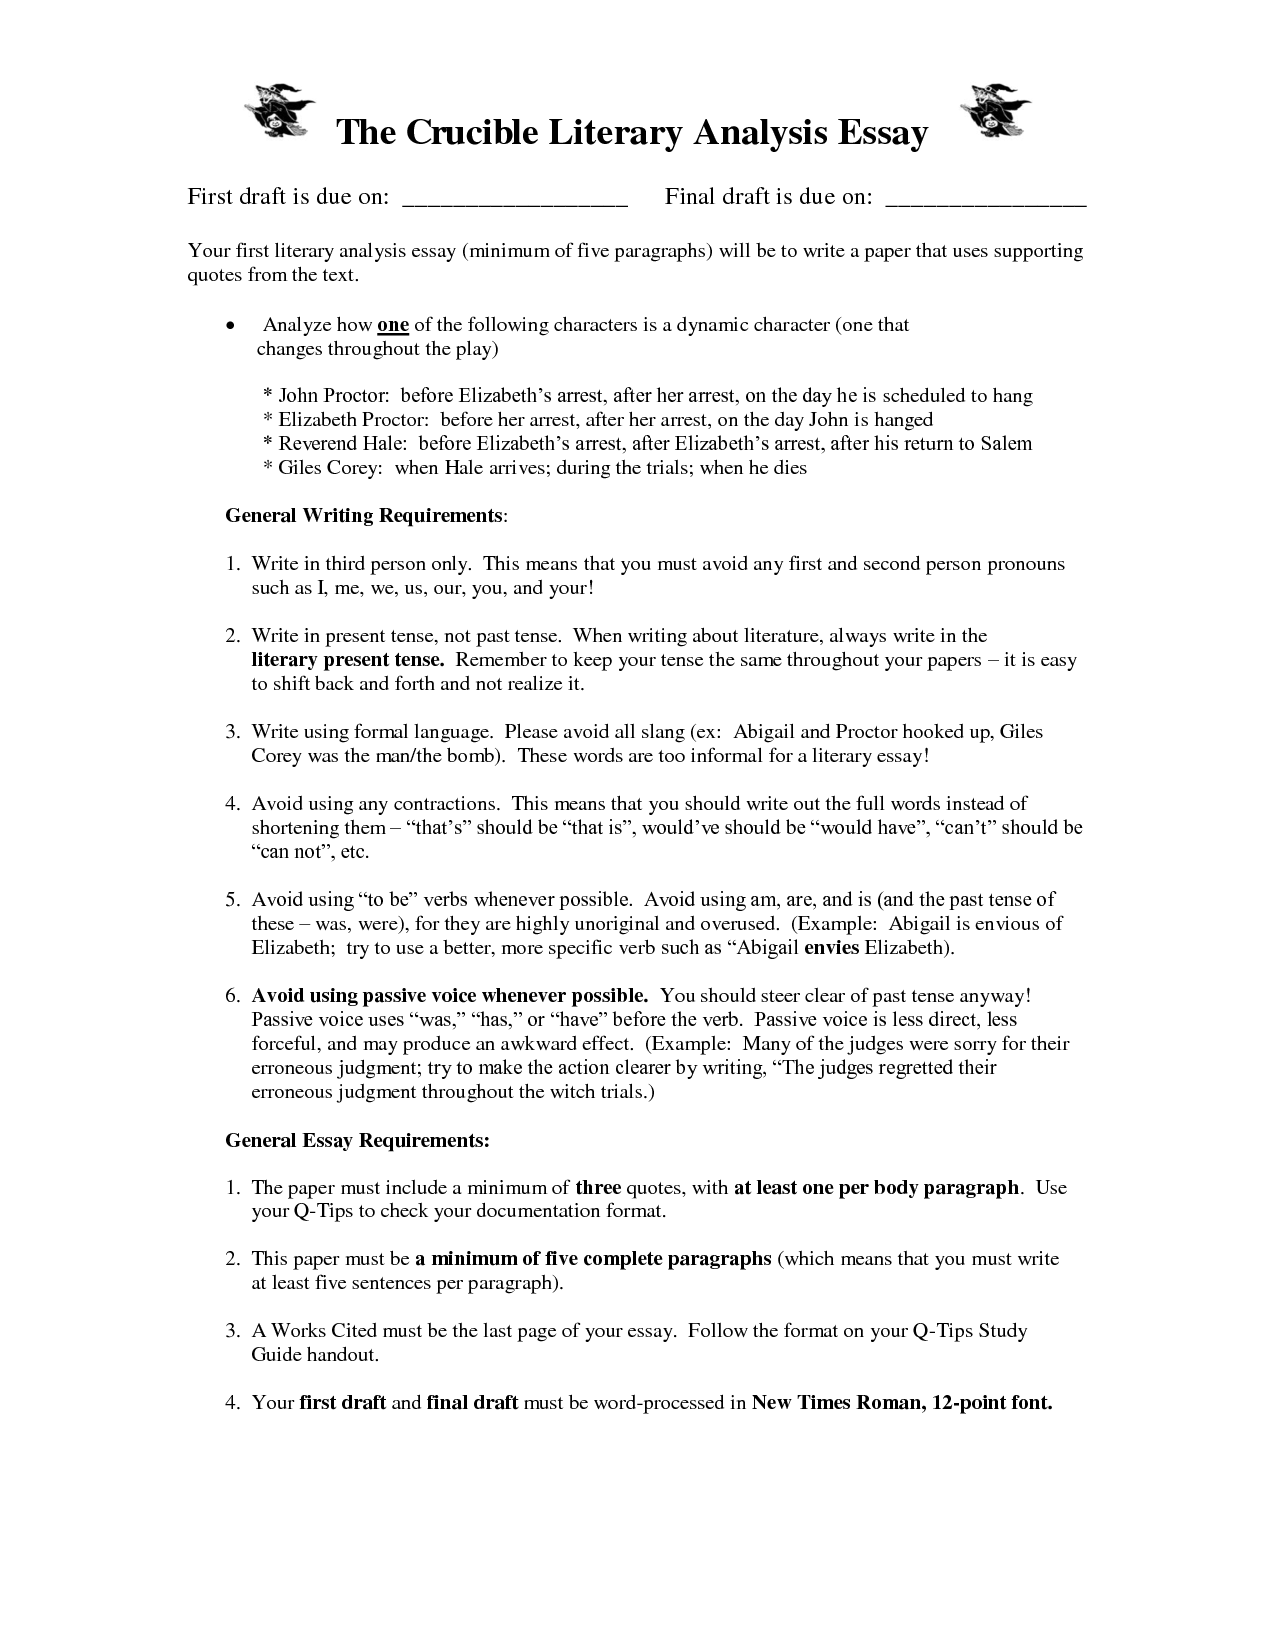 021 Essay Example Literary Essays Of The Crucible How Tote Step By Conclusion On Romeo And Juliet Introduction Do You Outline 4th Grade Analysis Pdf Formidable To Write A Thesis Statement Full